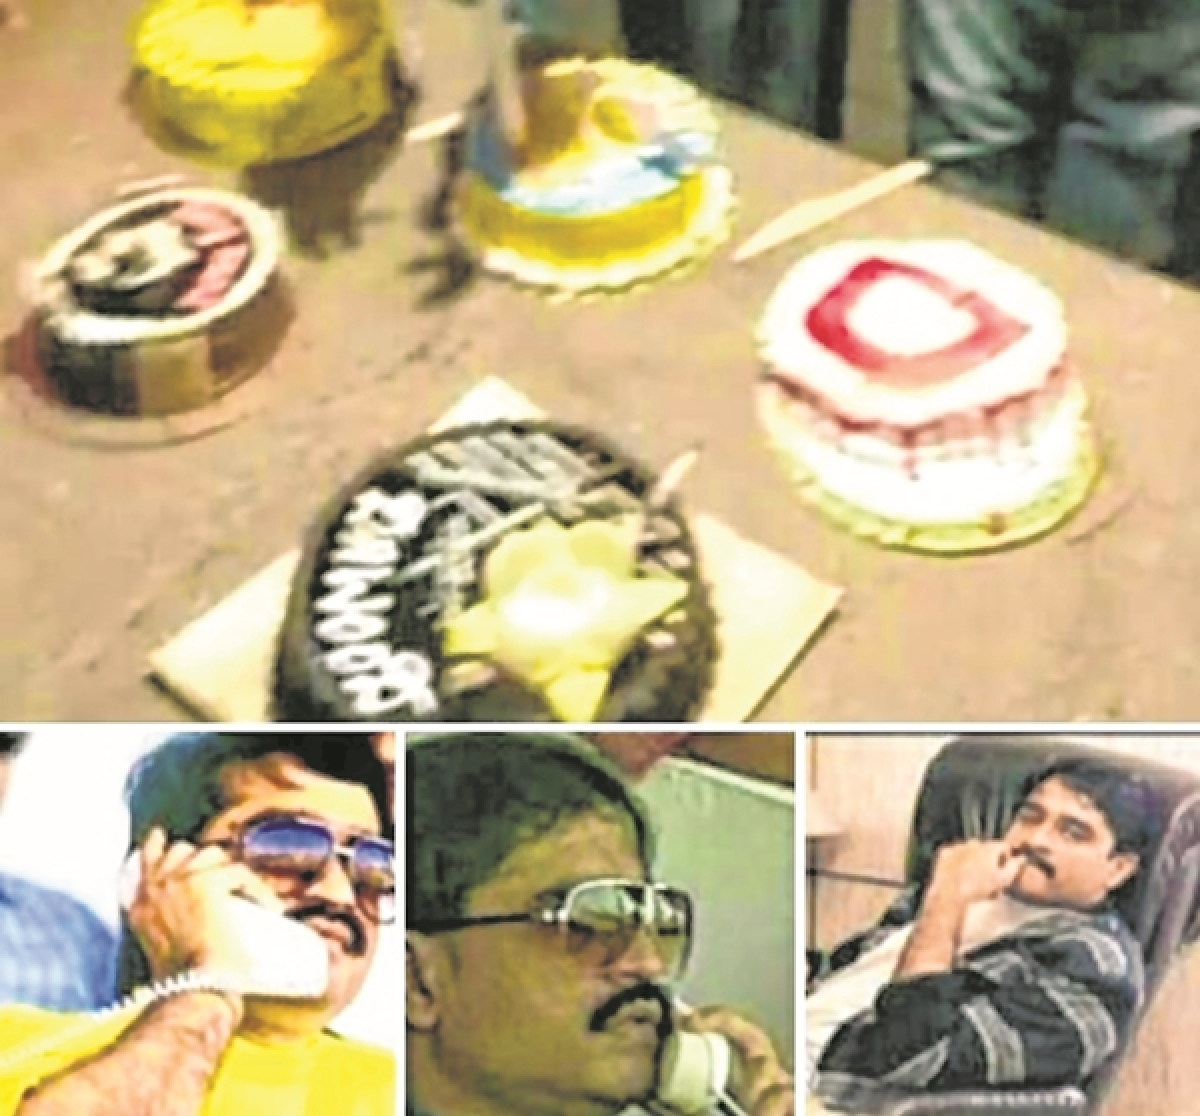 Crumbs! Youth greets Dawood Ibrahim on birthday, lands in soup